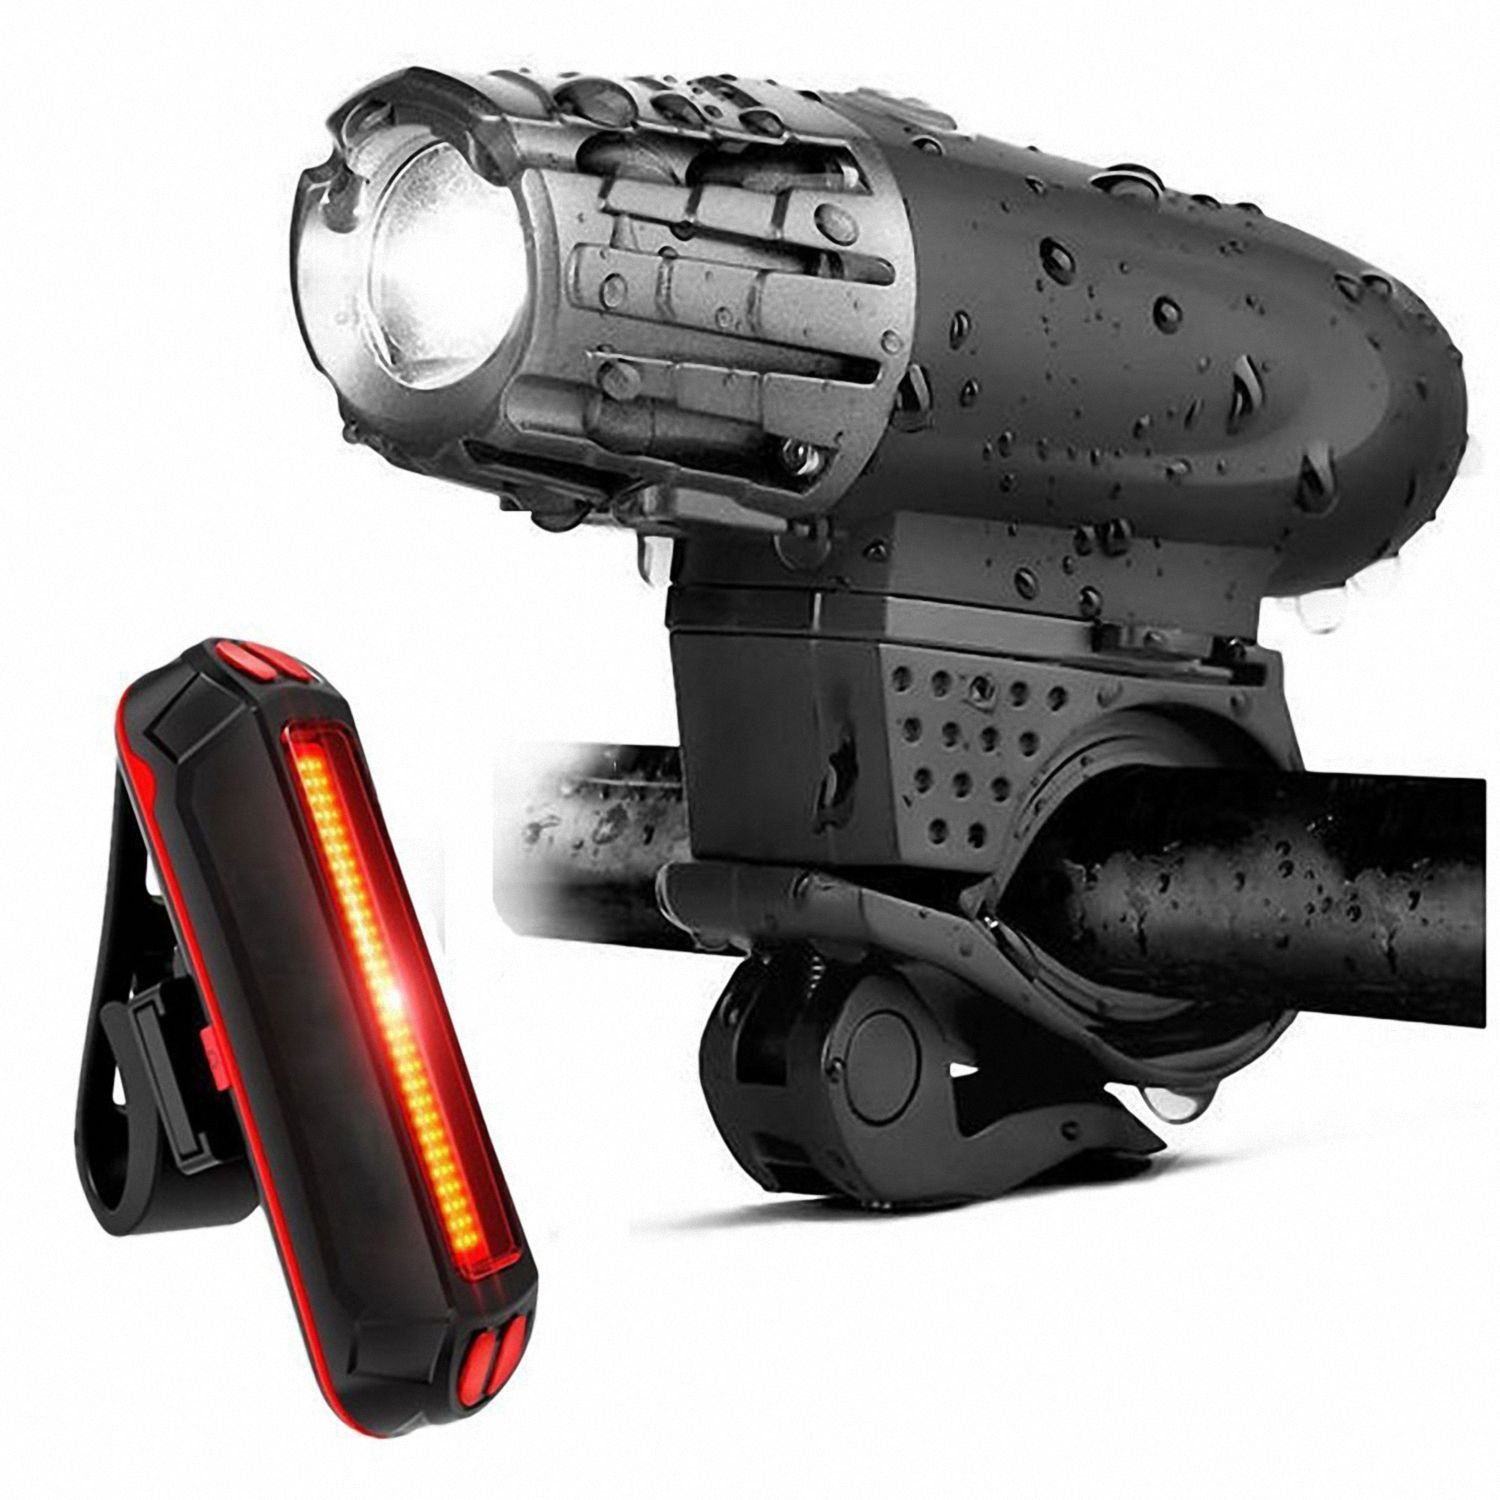 FSTE-Bike Lights Bicycle Lights Front And Back USB Rechargeable Bike Light Set Super Bright Front And Rear Flashlight LED Head